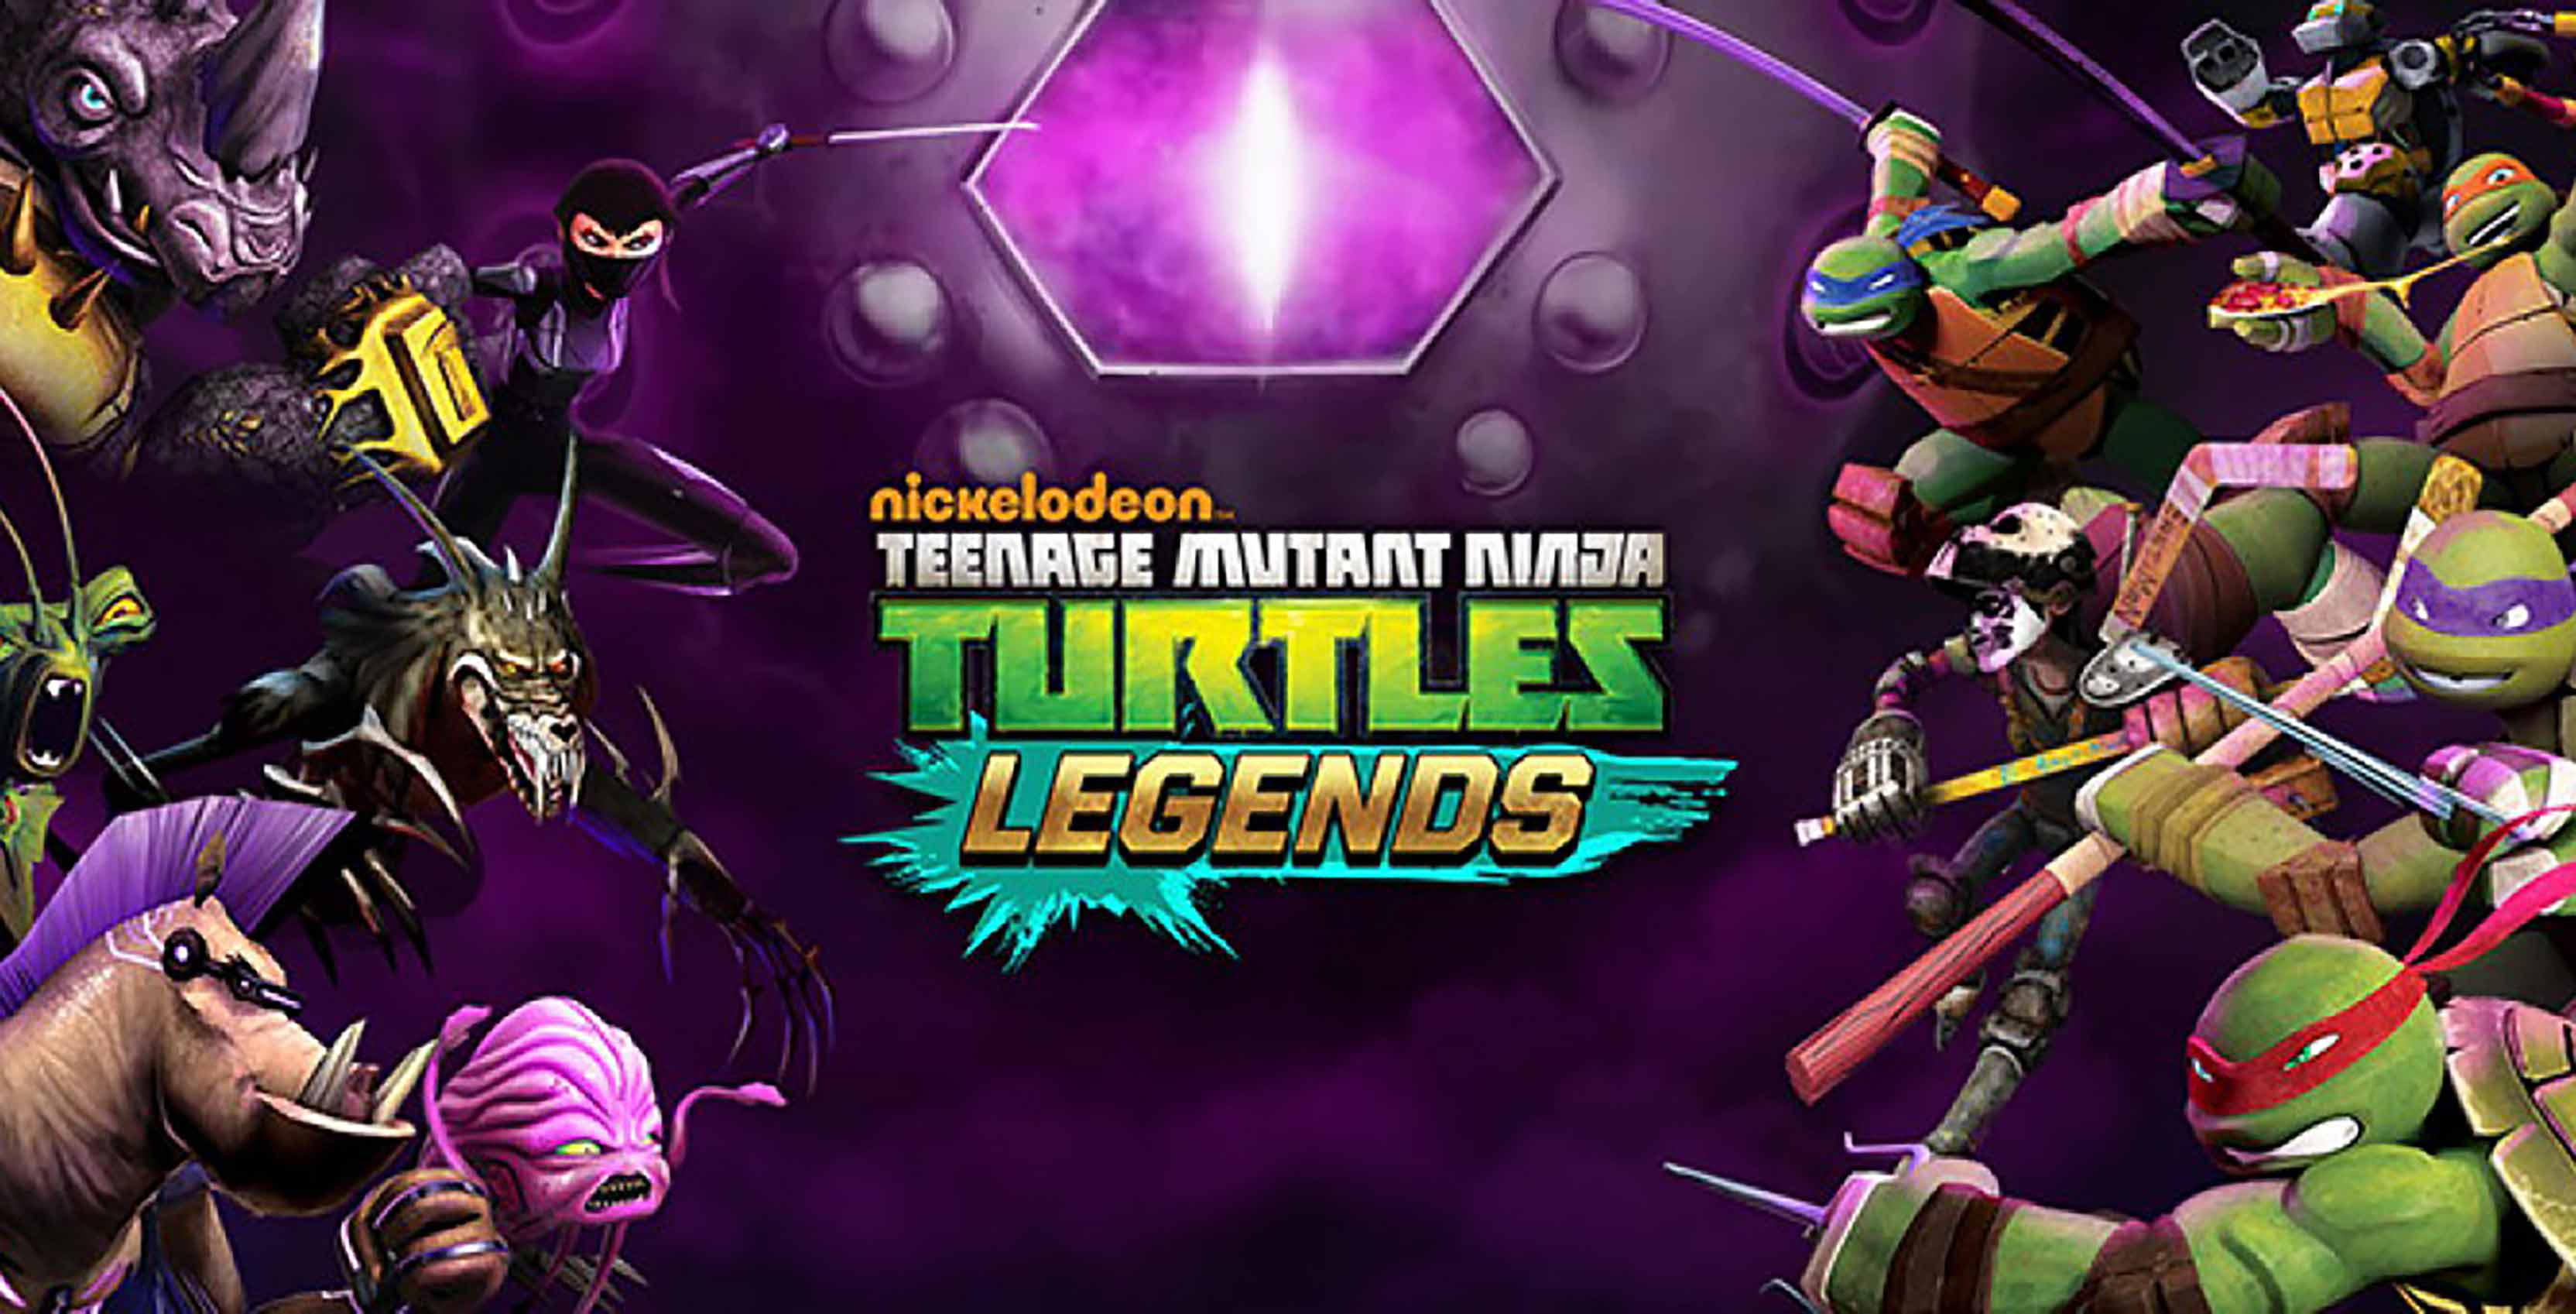 Teenage Mutant Ninja Turtles Legends iOS